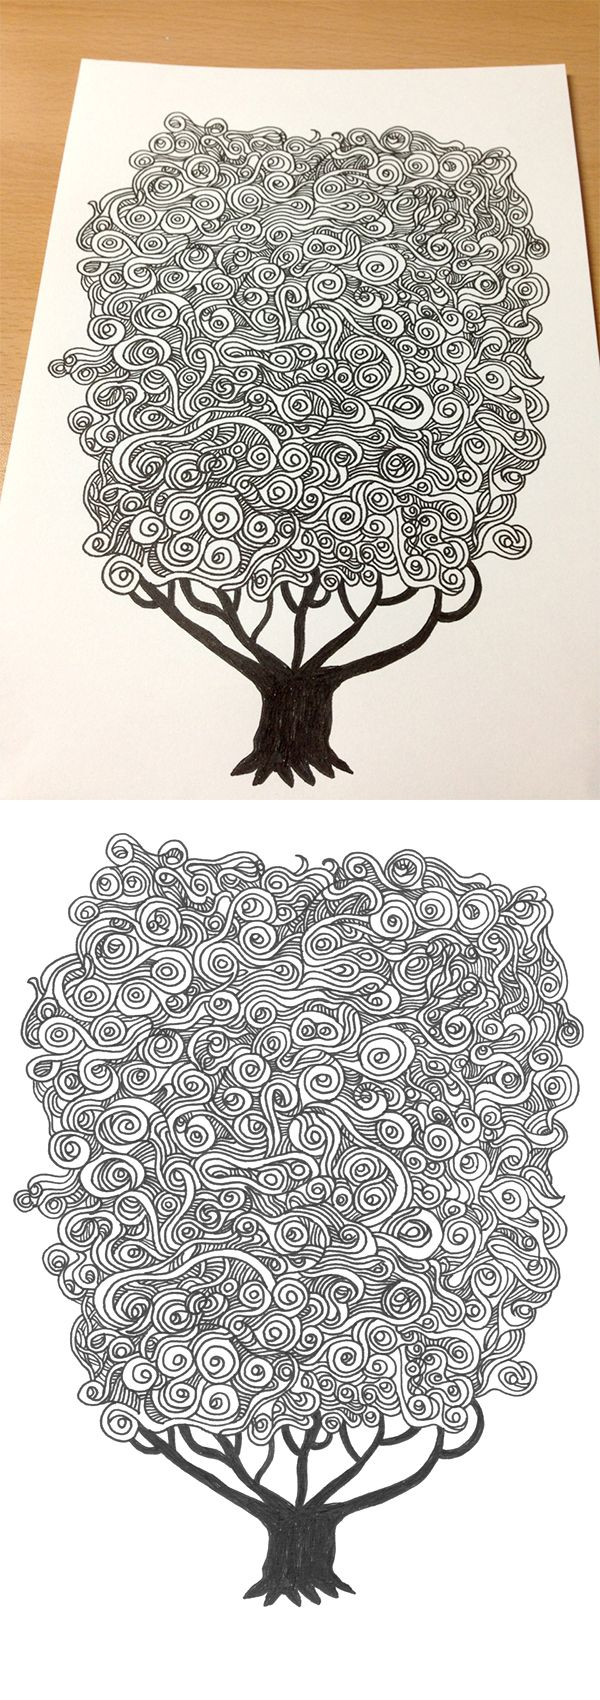 Cloud Tree on Behance